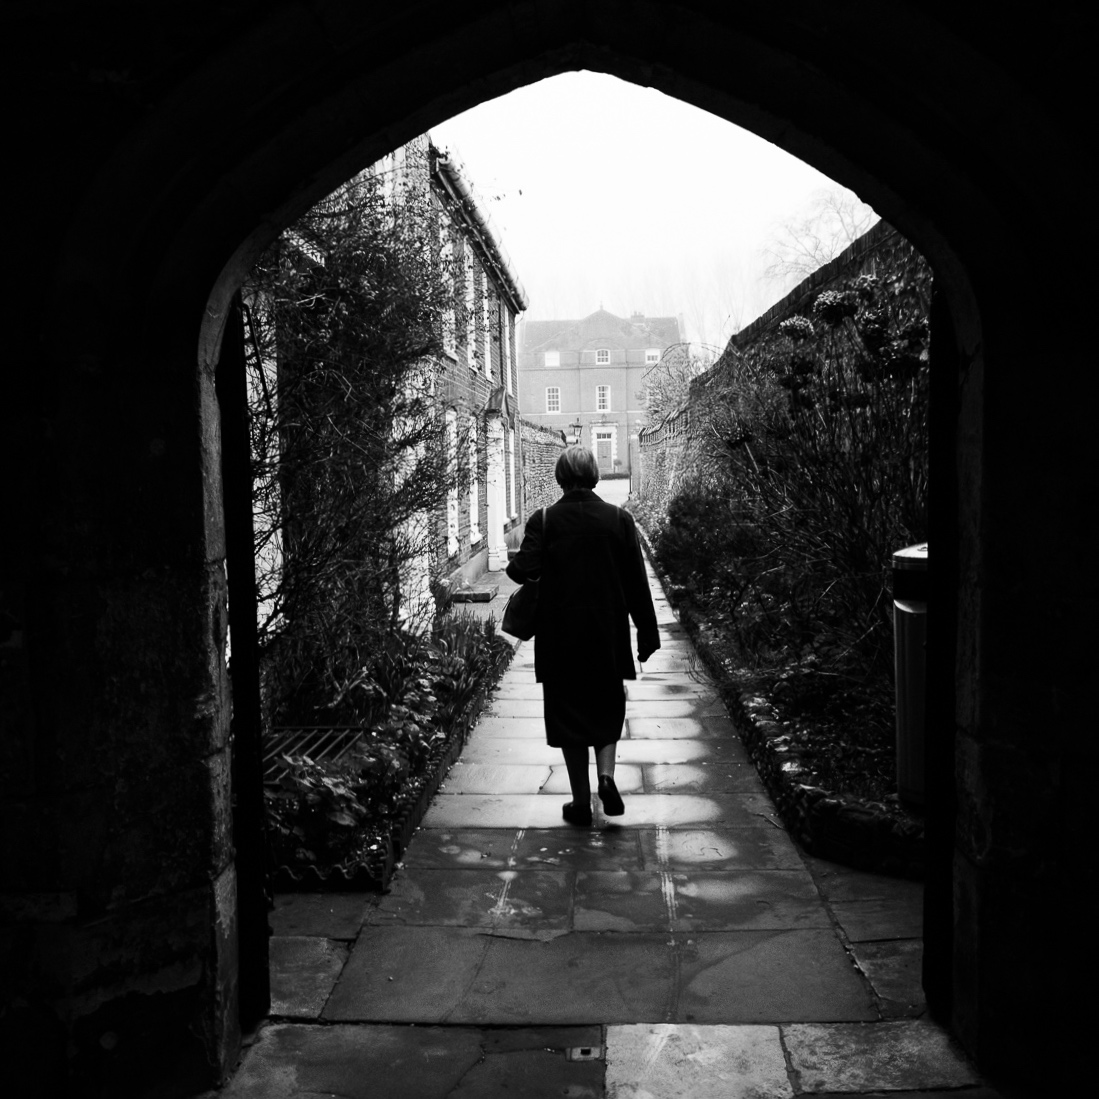 I love exploring Chichester with my camera, I took this photo of a lady just after she had walked through a stone archway in the Cloisters of Chichester Cathedral. Photo © Scott Ramsey.